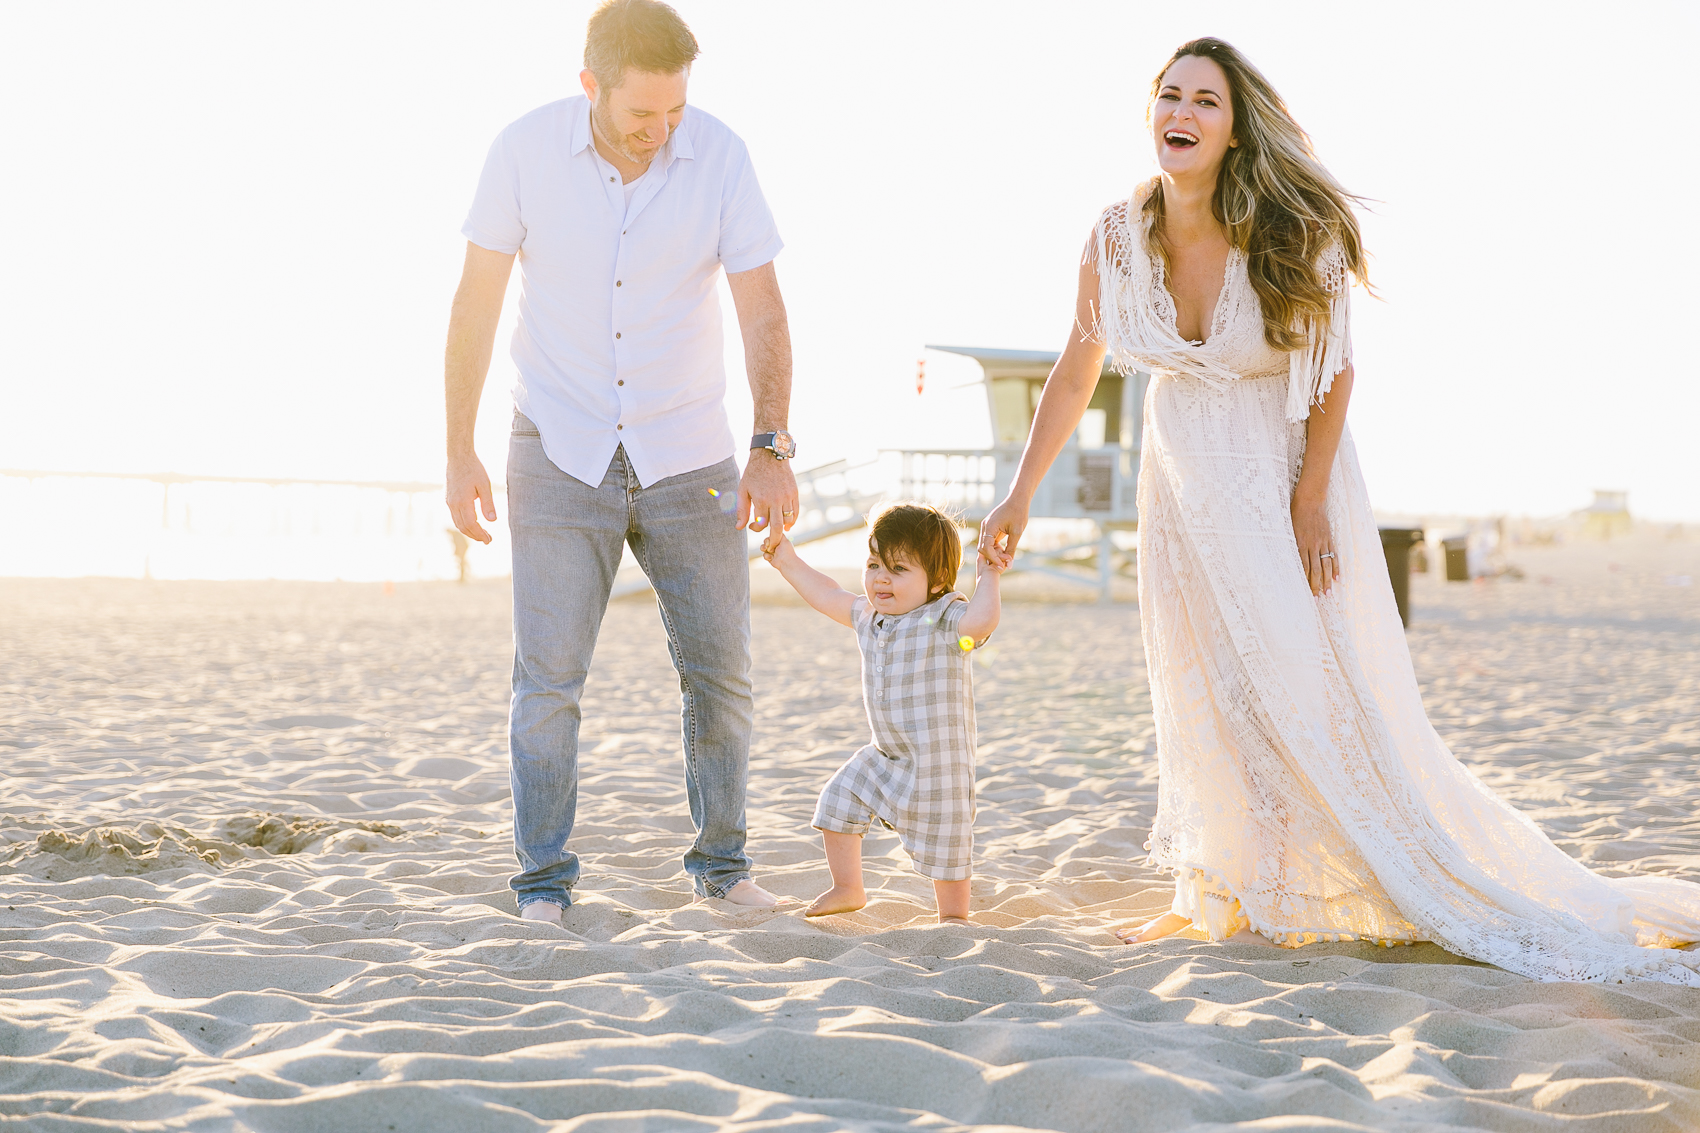 Los_Angeles_Family_Photographer_Maternity_Photos_Baby_Pregnancy_Venice_Beach_Golden_Hour-0510.jpg